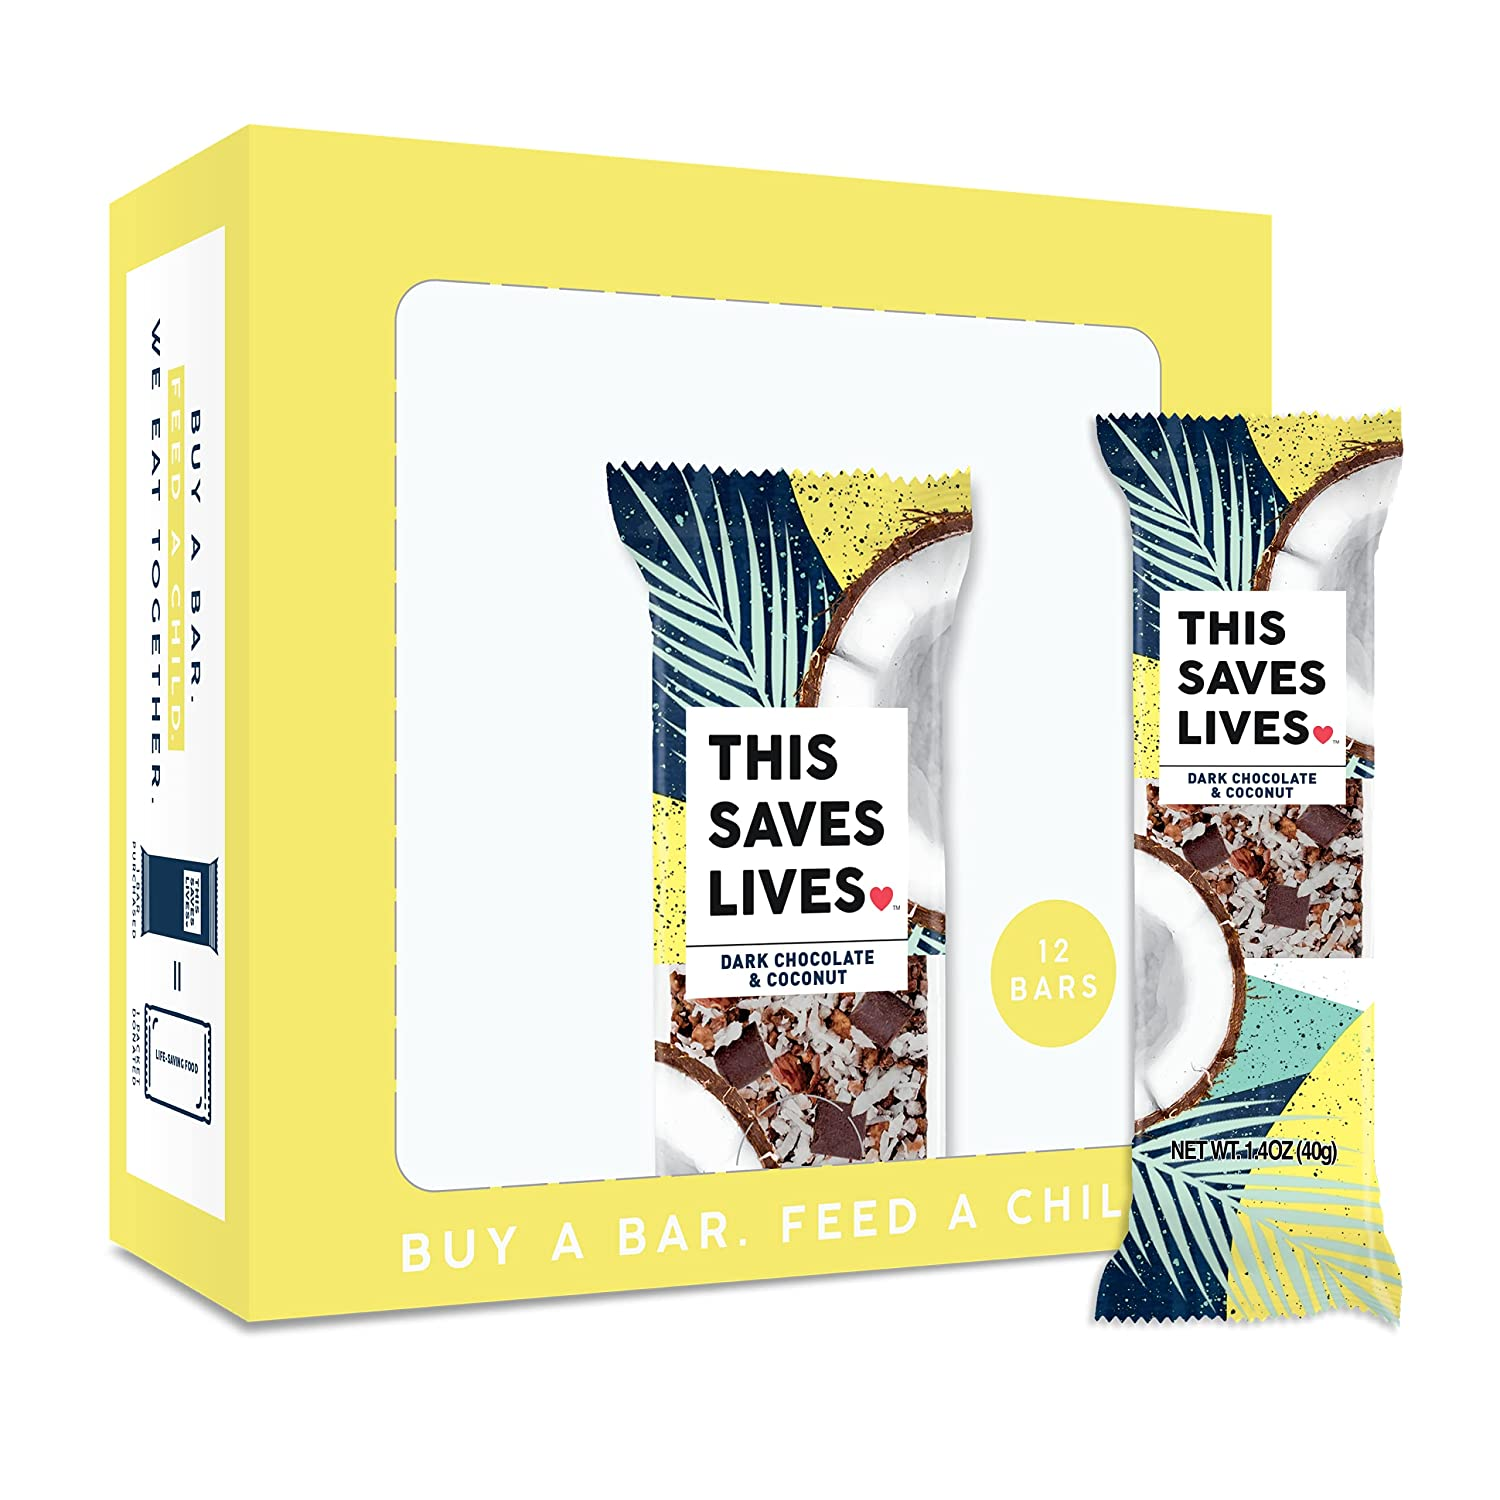 This Bar Saves Max 75% OFF Baltimore Mall Lives Chewy Coconut Bars Dark Chocolate Granola